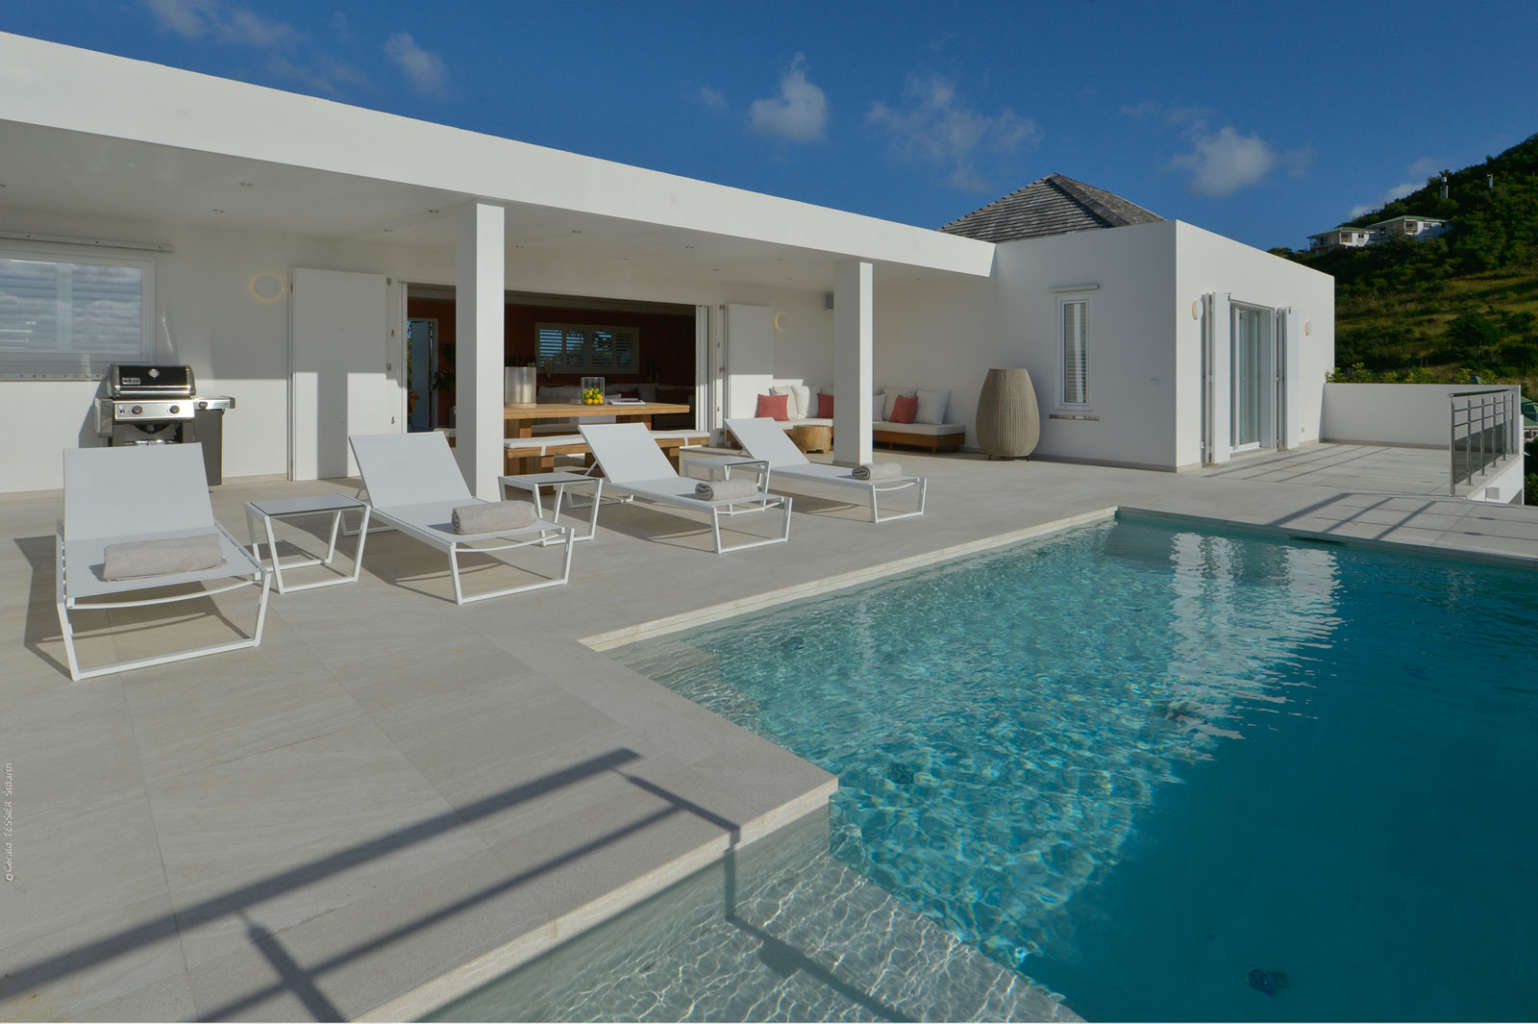 Villa South Wave - 2 Bedroom Villa For Rent with Full Air Conditioning - Outside View